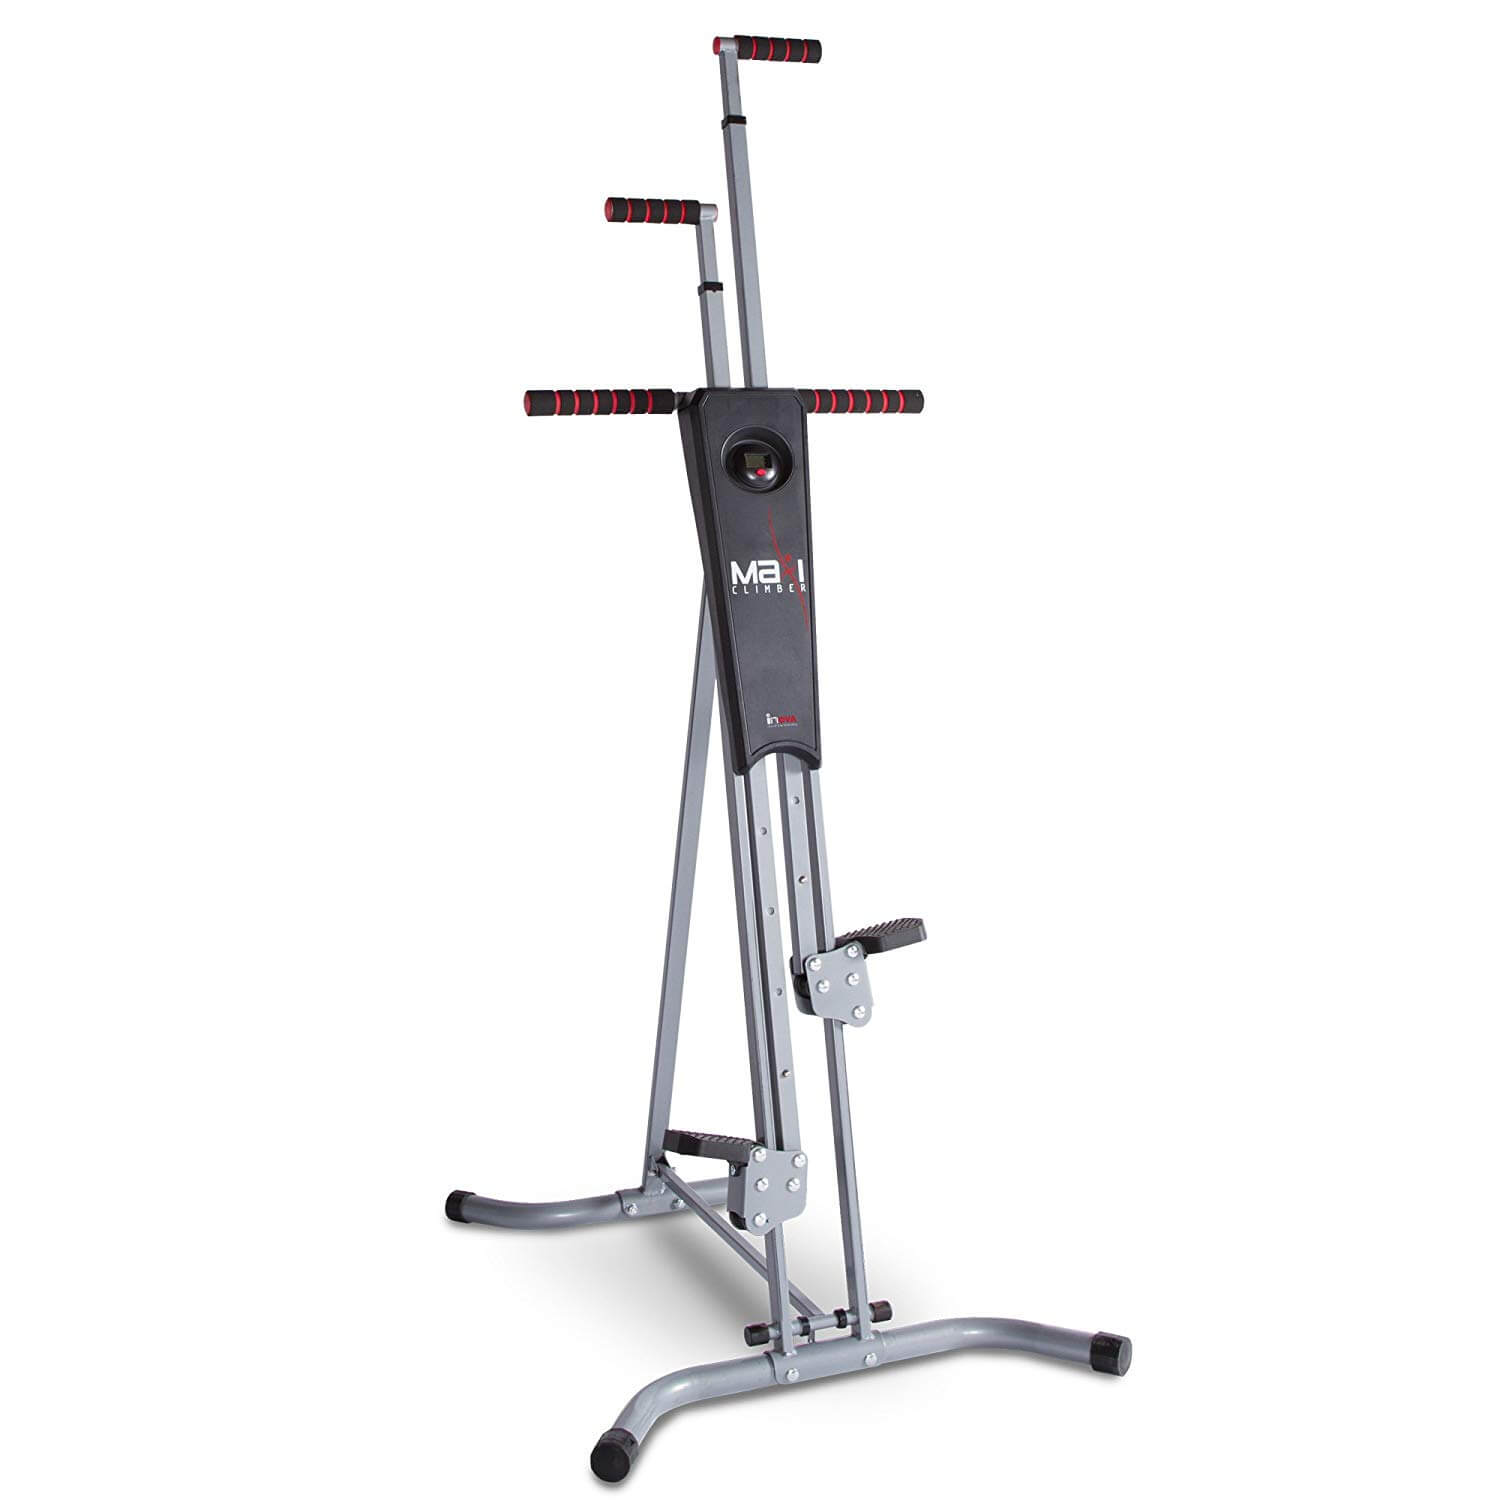 7d933b4601e Best Vertical Climber Exercise Machines to buy in 2018